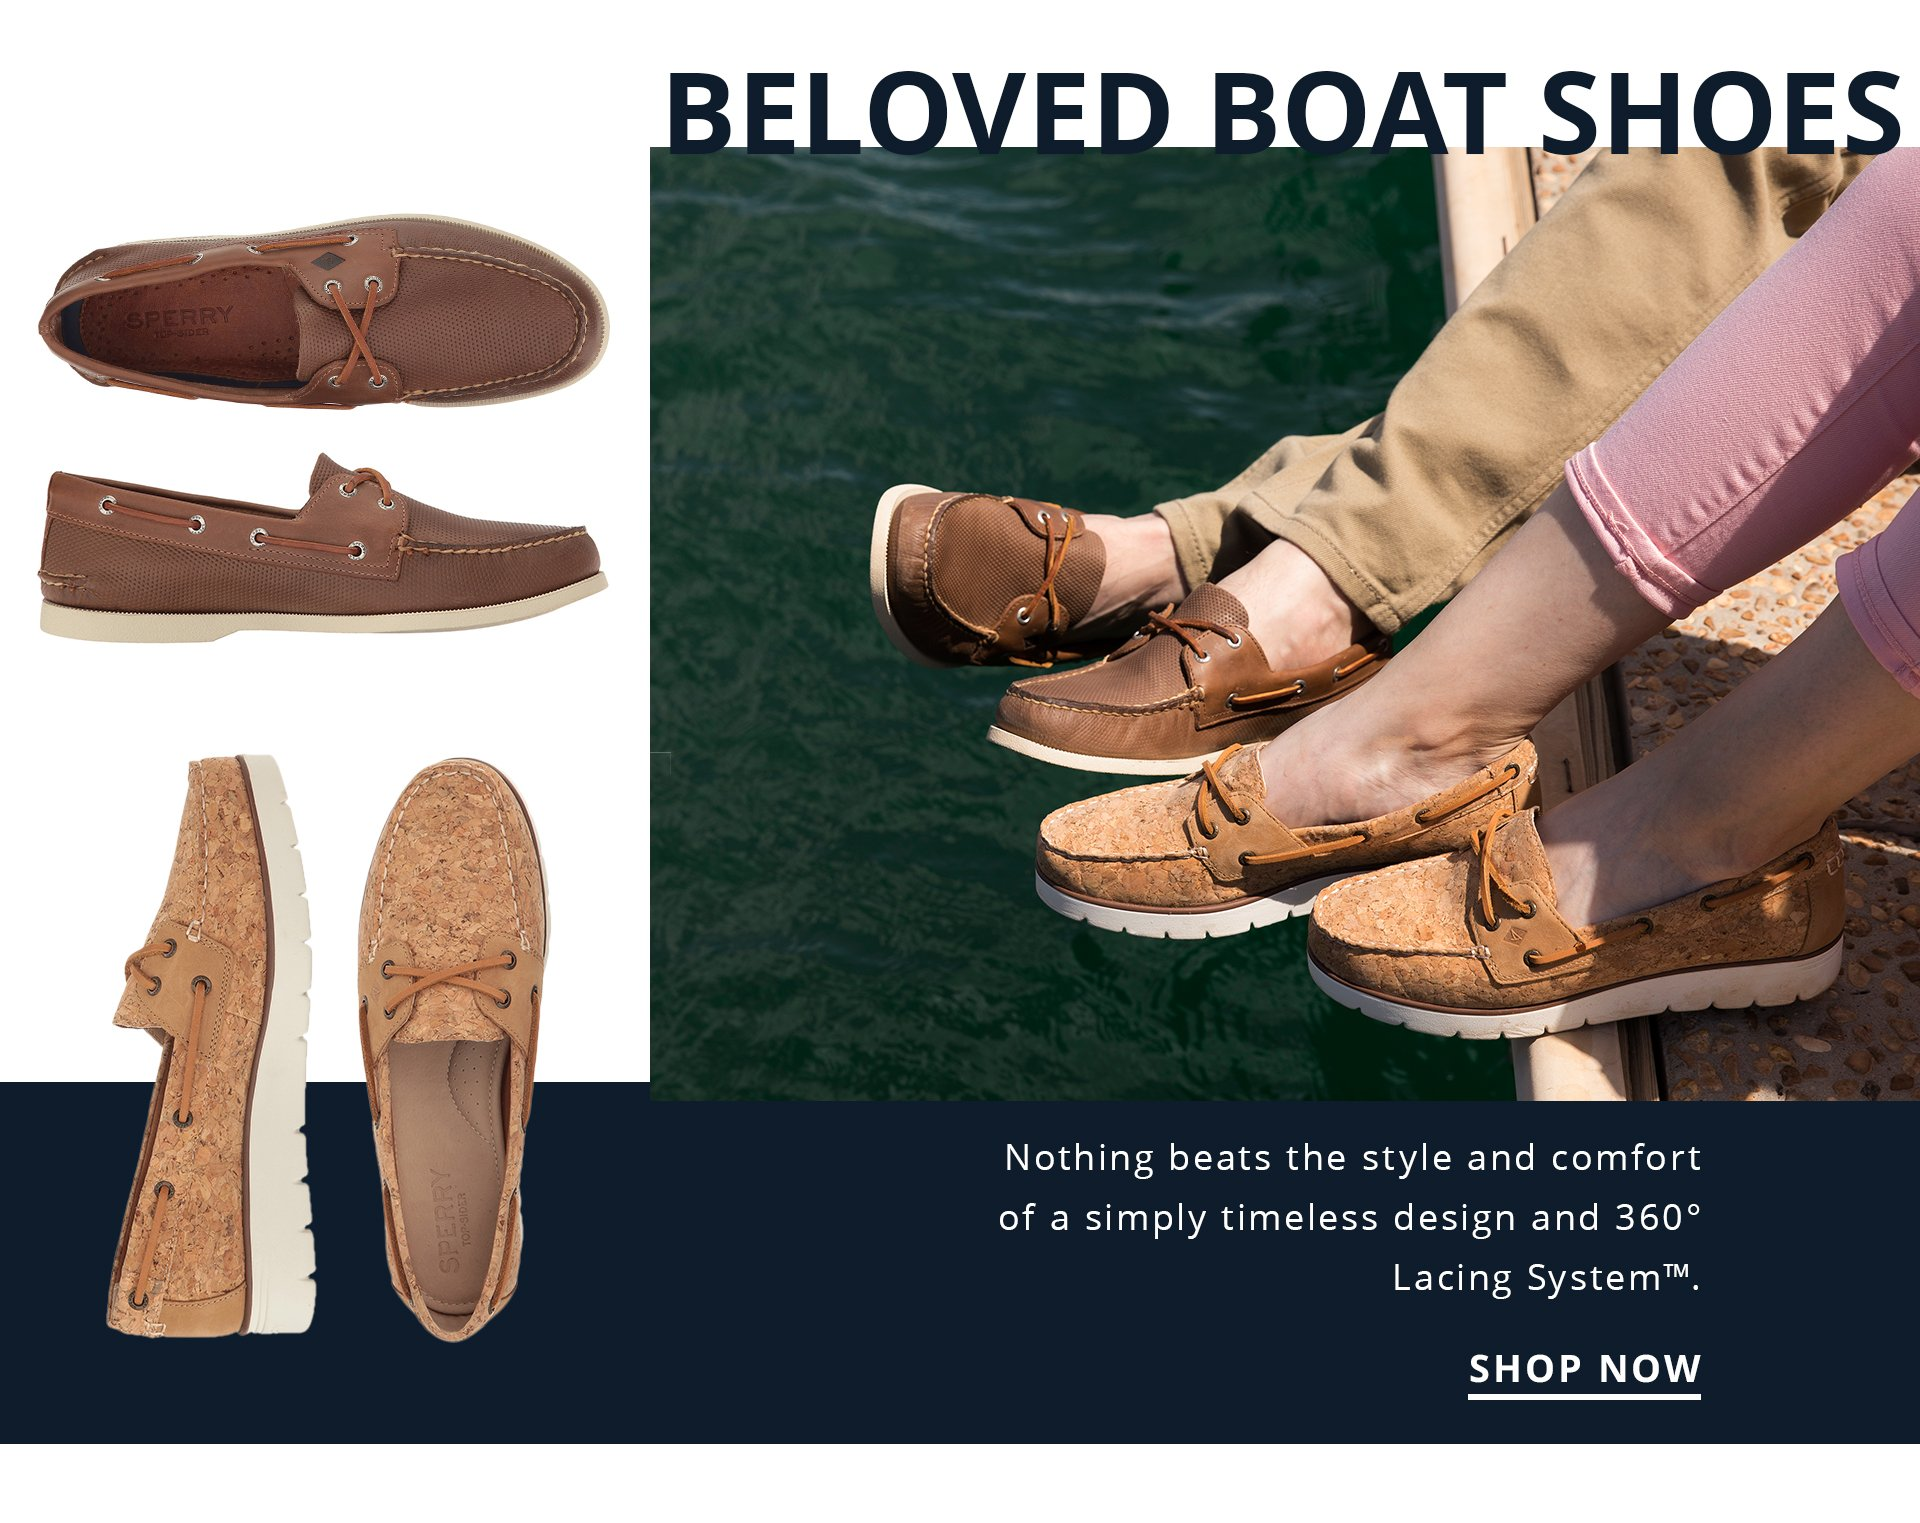 Beloved Boat Shoes